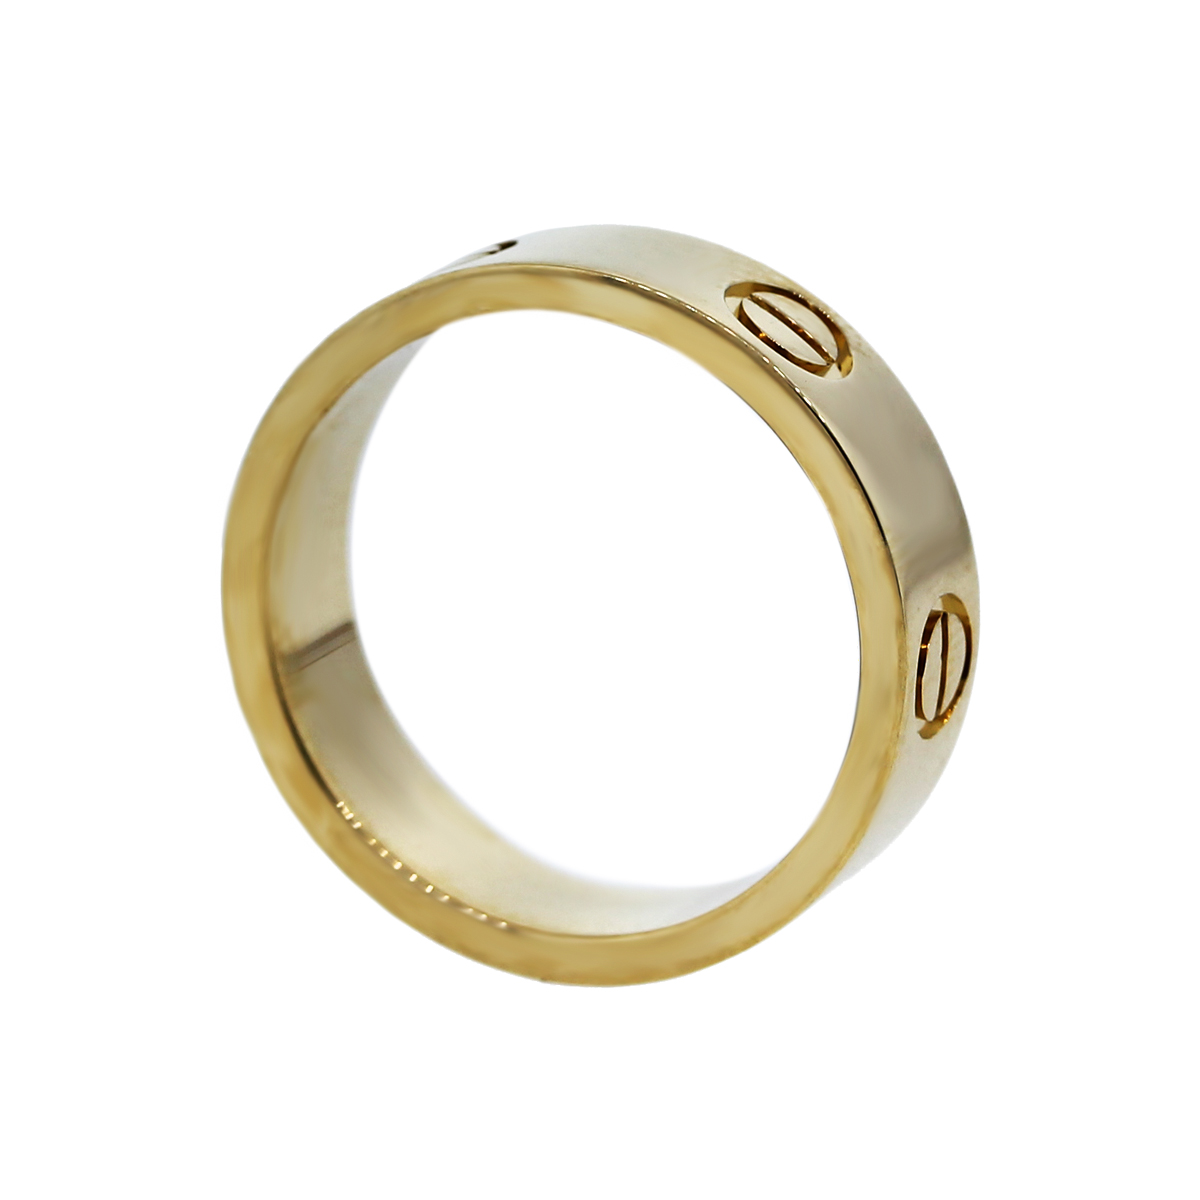 Cartier 18K Yellow Gold Love Ring Size 54